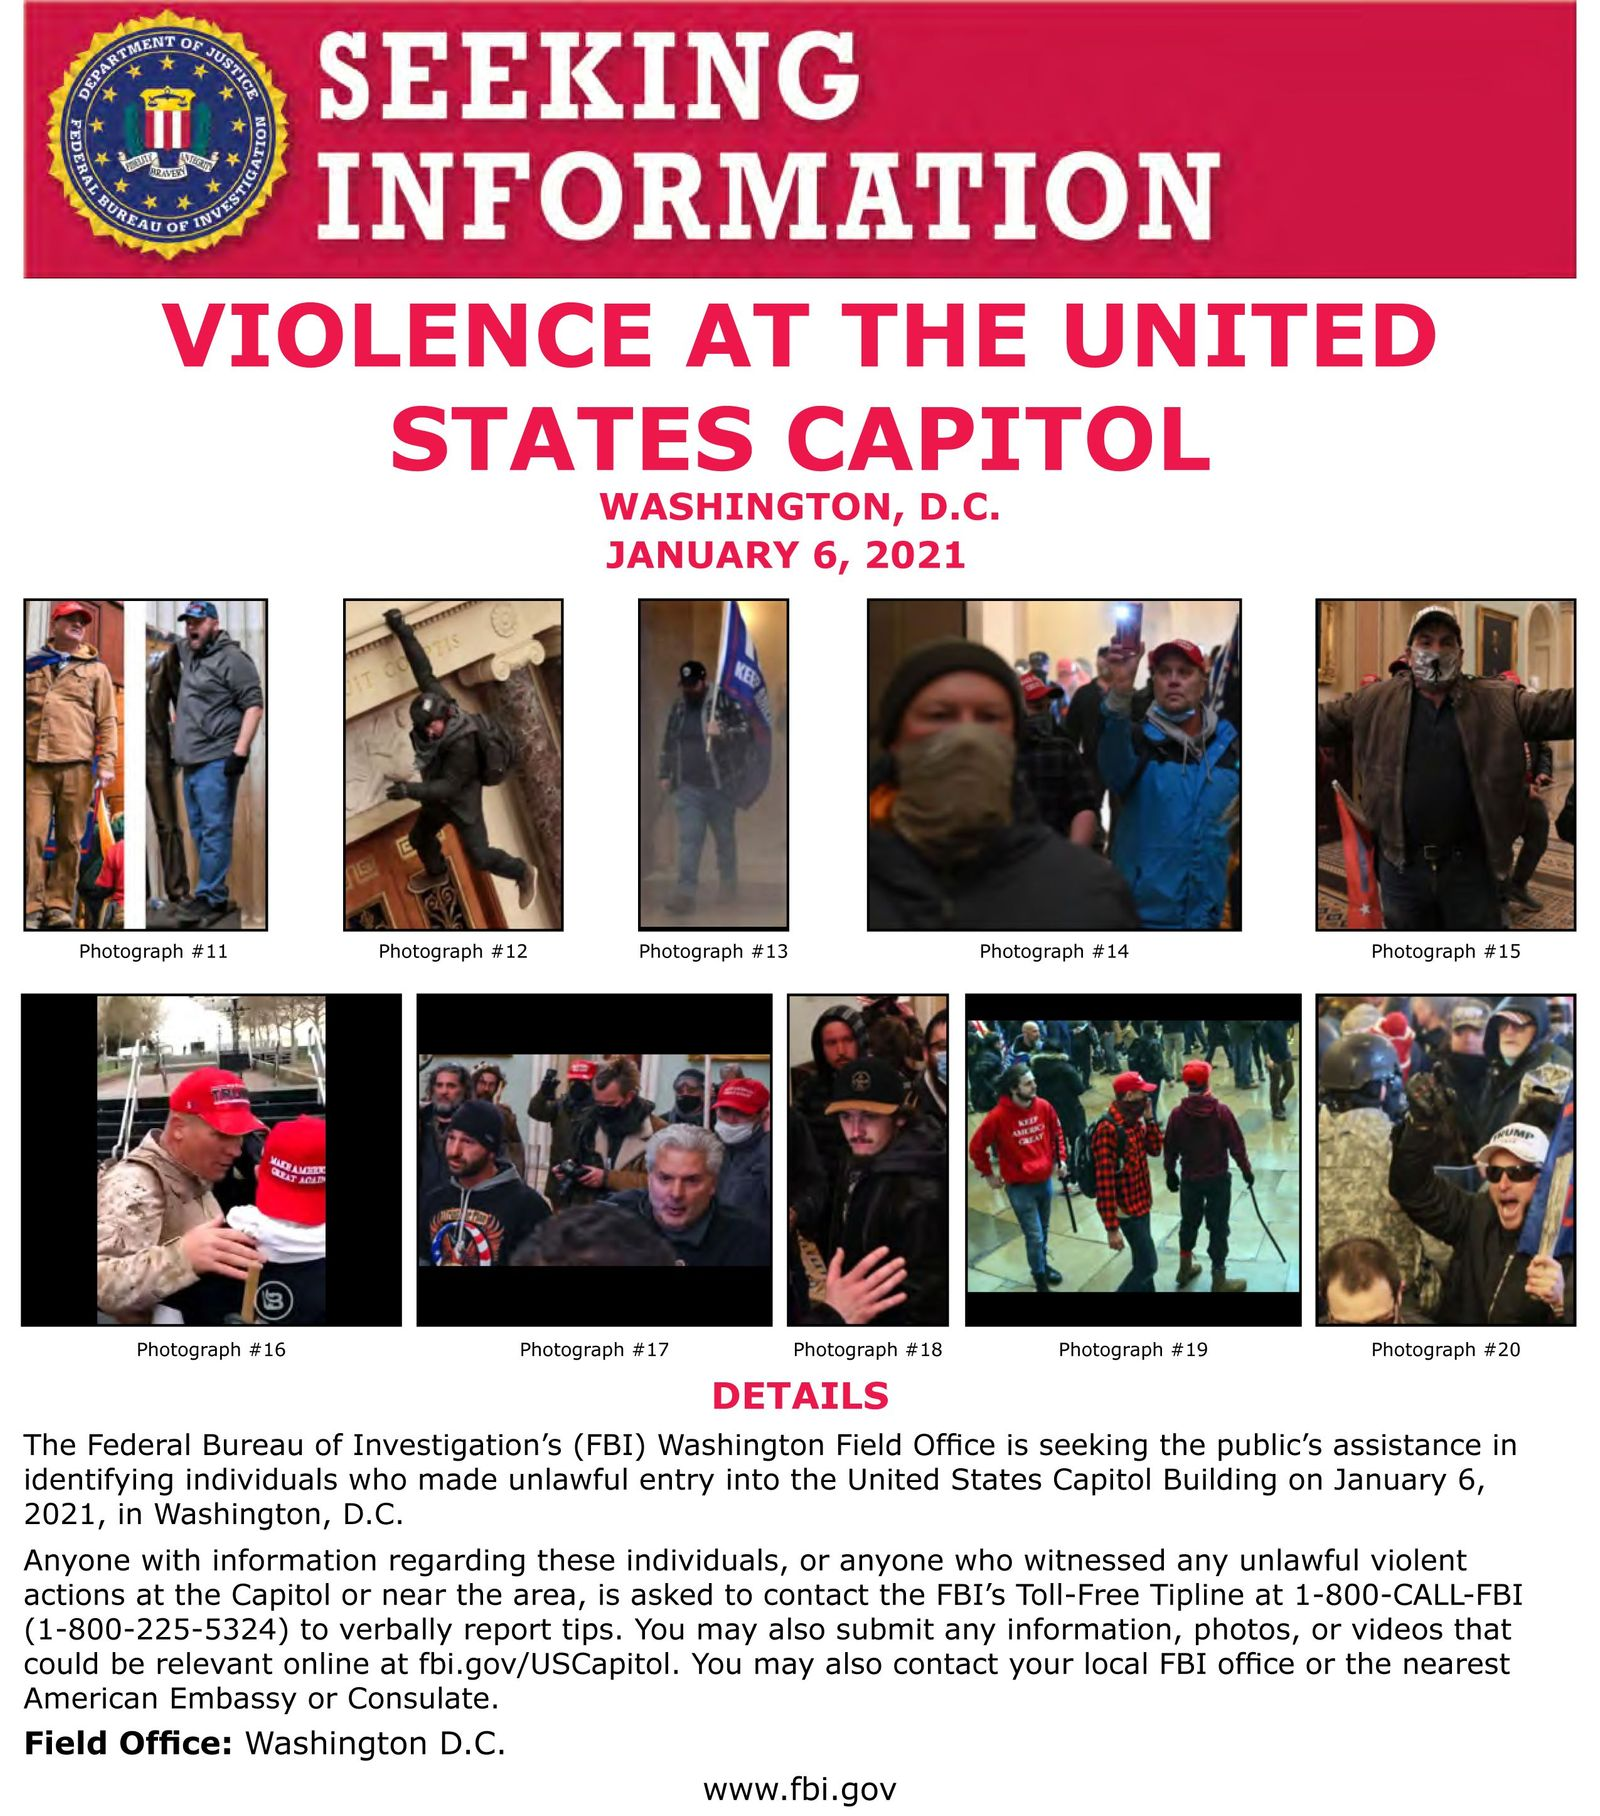 FBI releases image of suspects wanted in connection with assault on capitol, Washington, USA - 06 Jan 2021